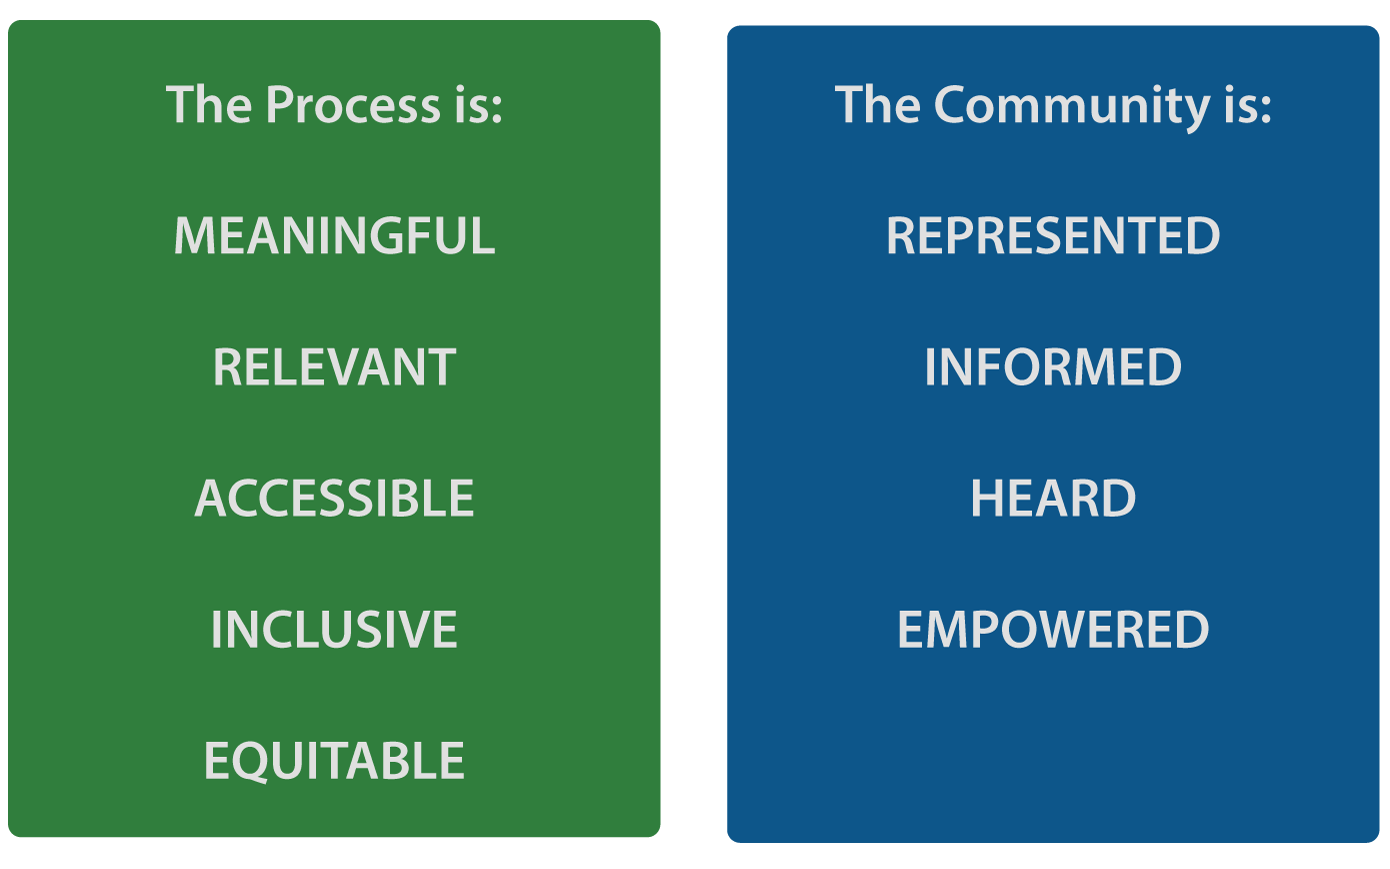 The process is: meaningful, relevant, accessible, inclusive, and equitable. The community is: represented, informed, heard, and empowered. click or press enter to view larger.